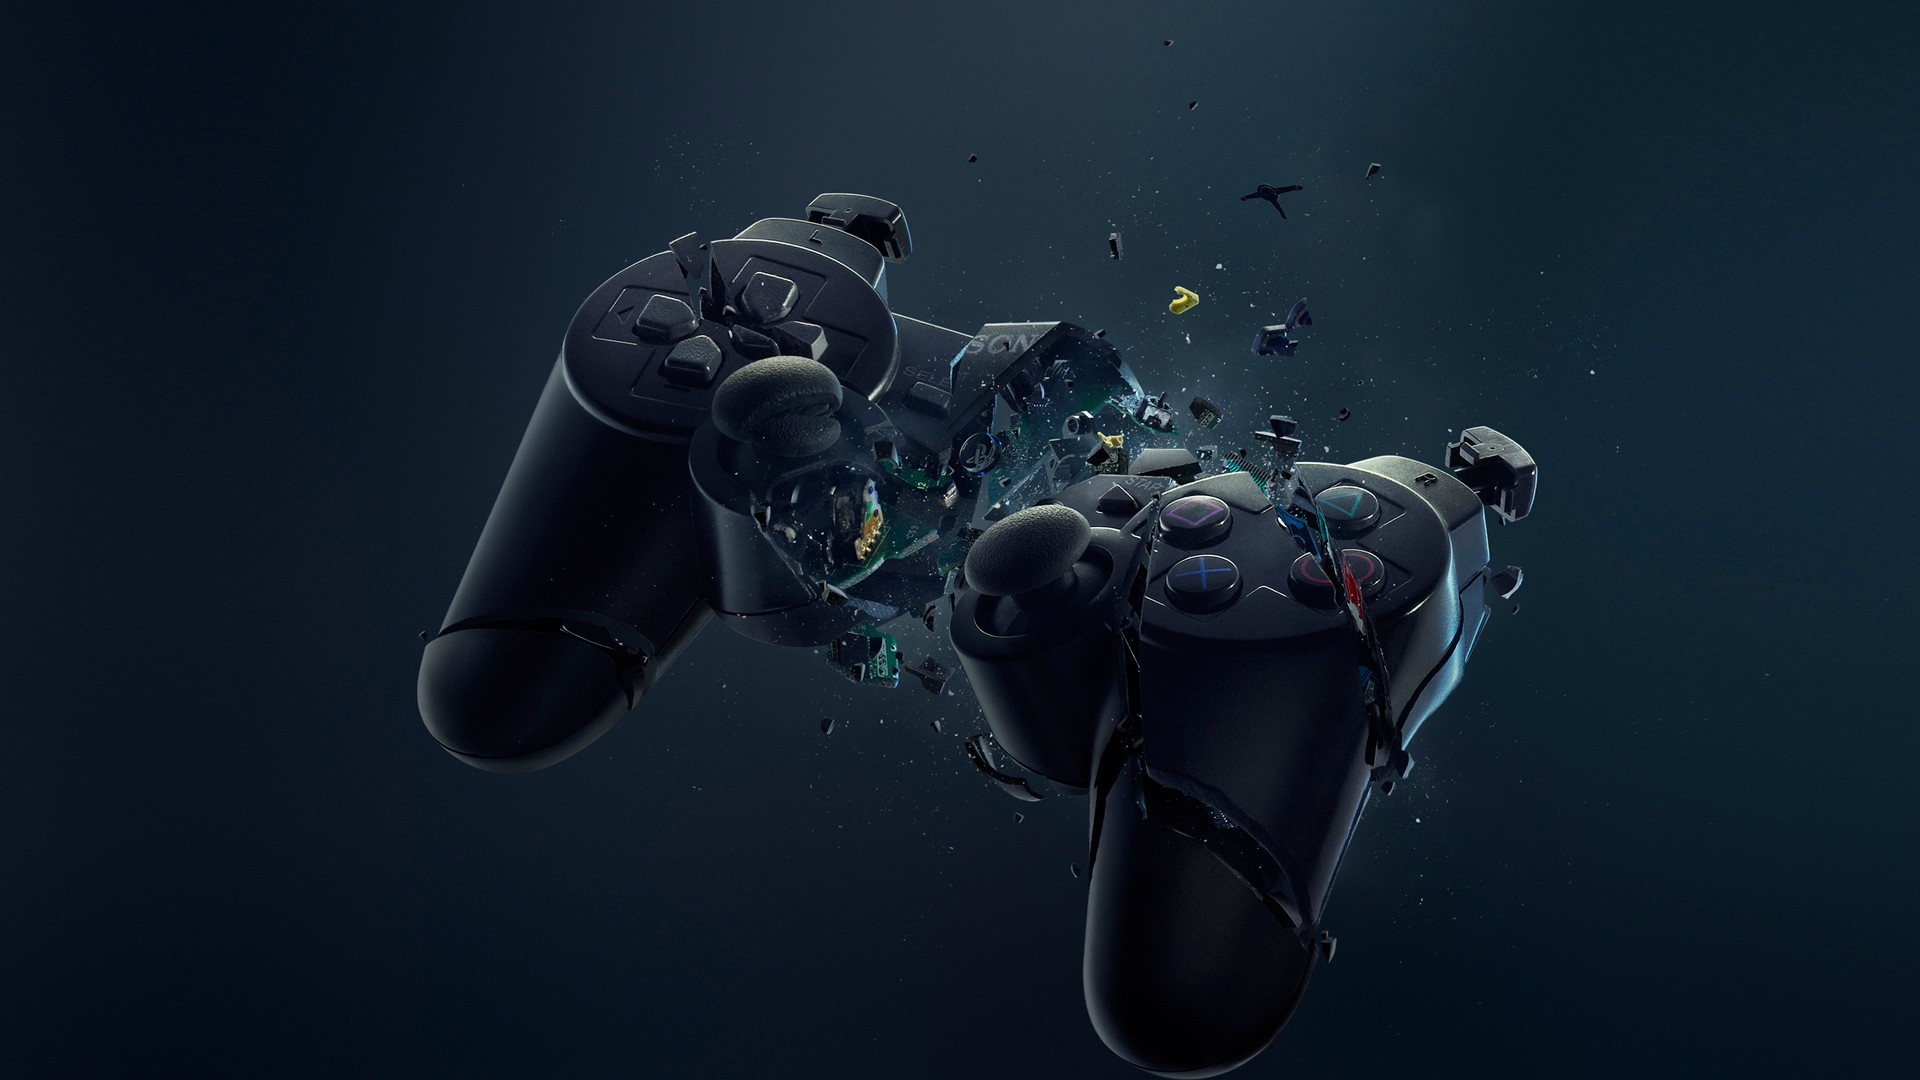 gaming_wallpaper-283